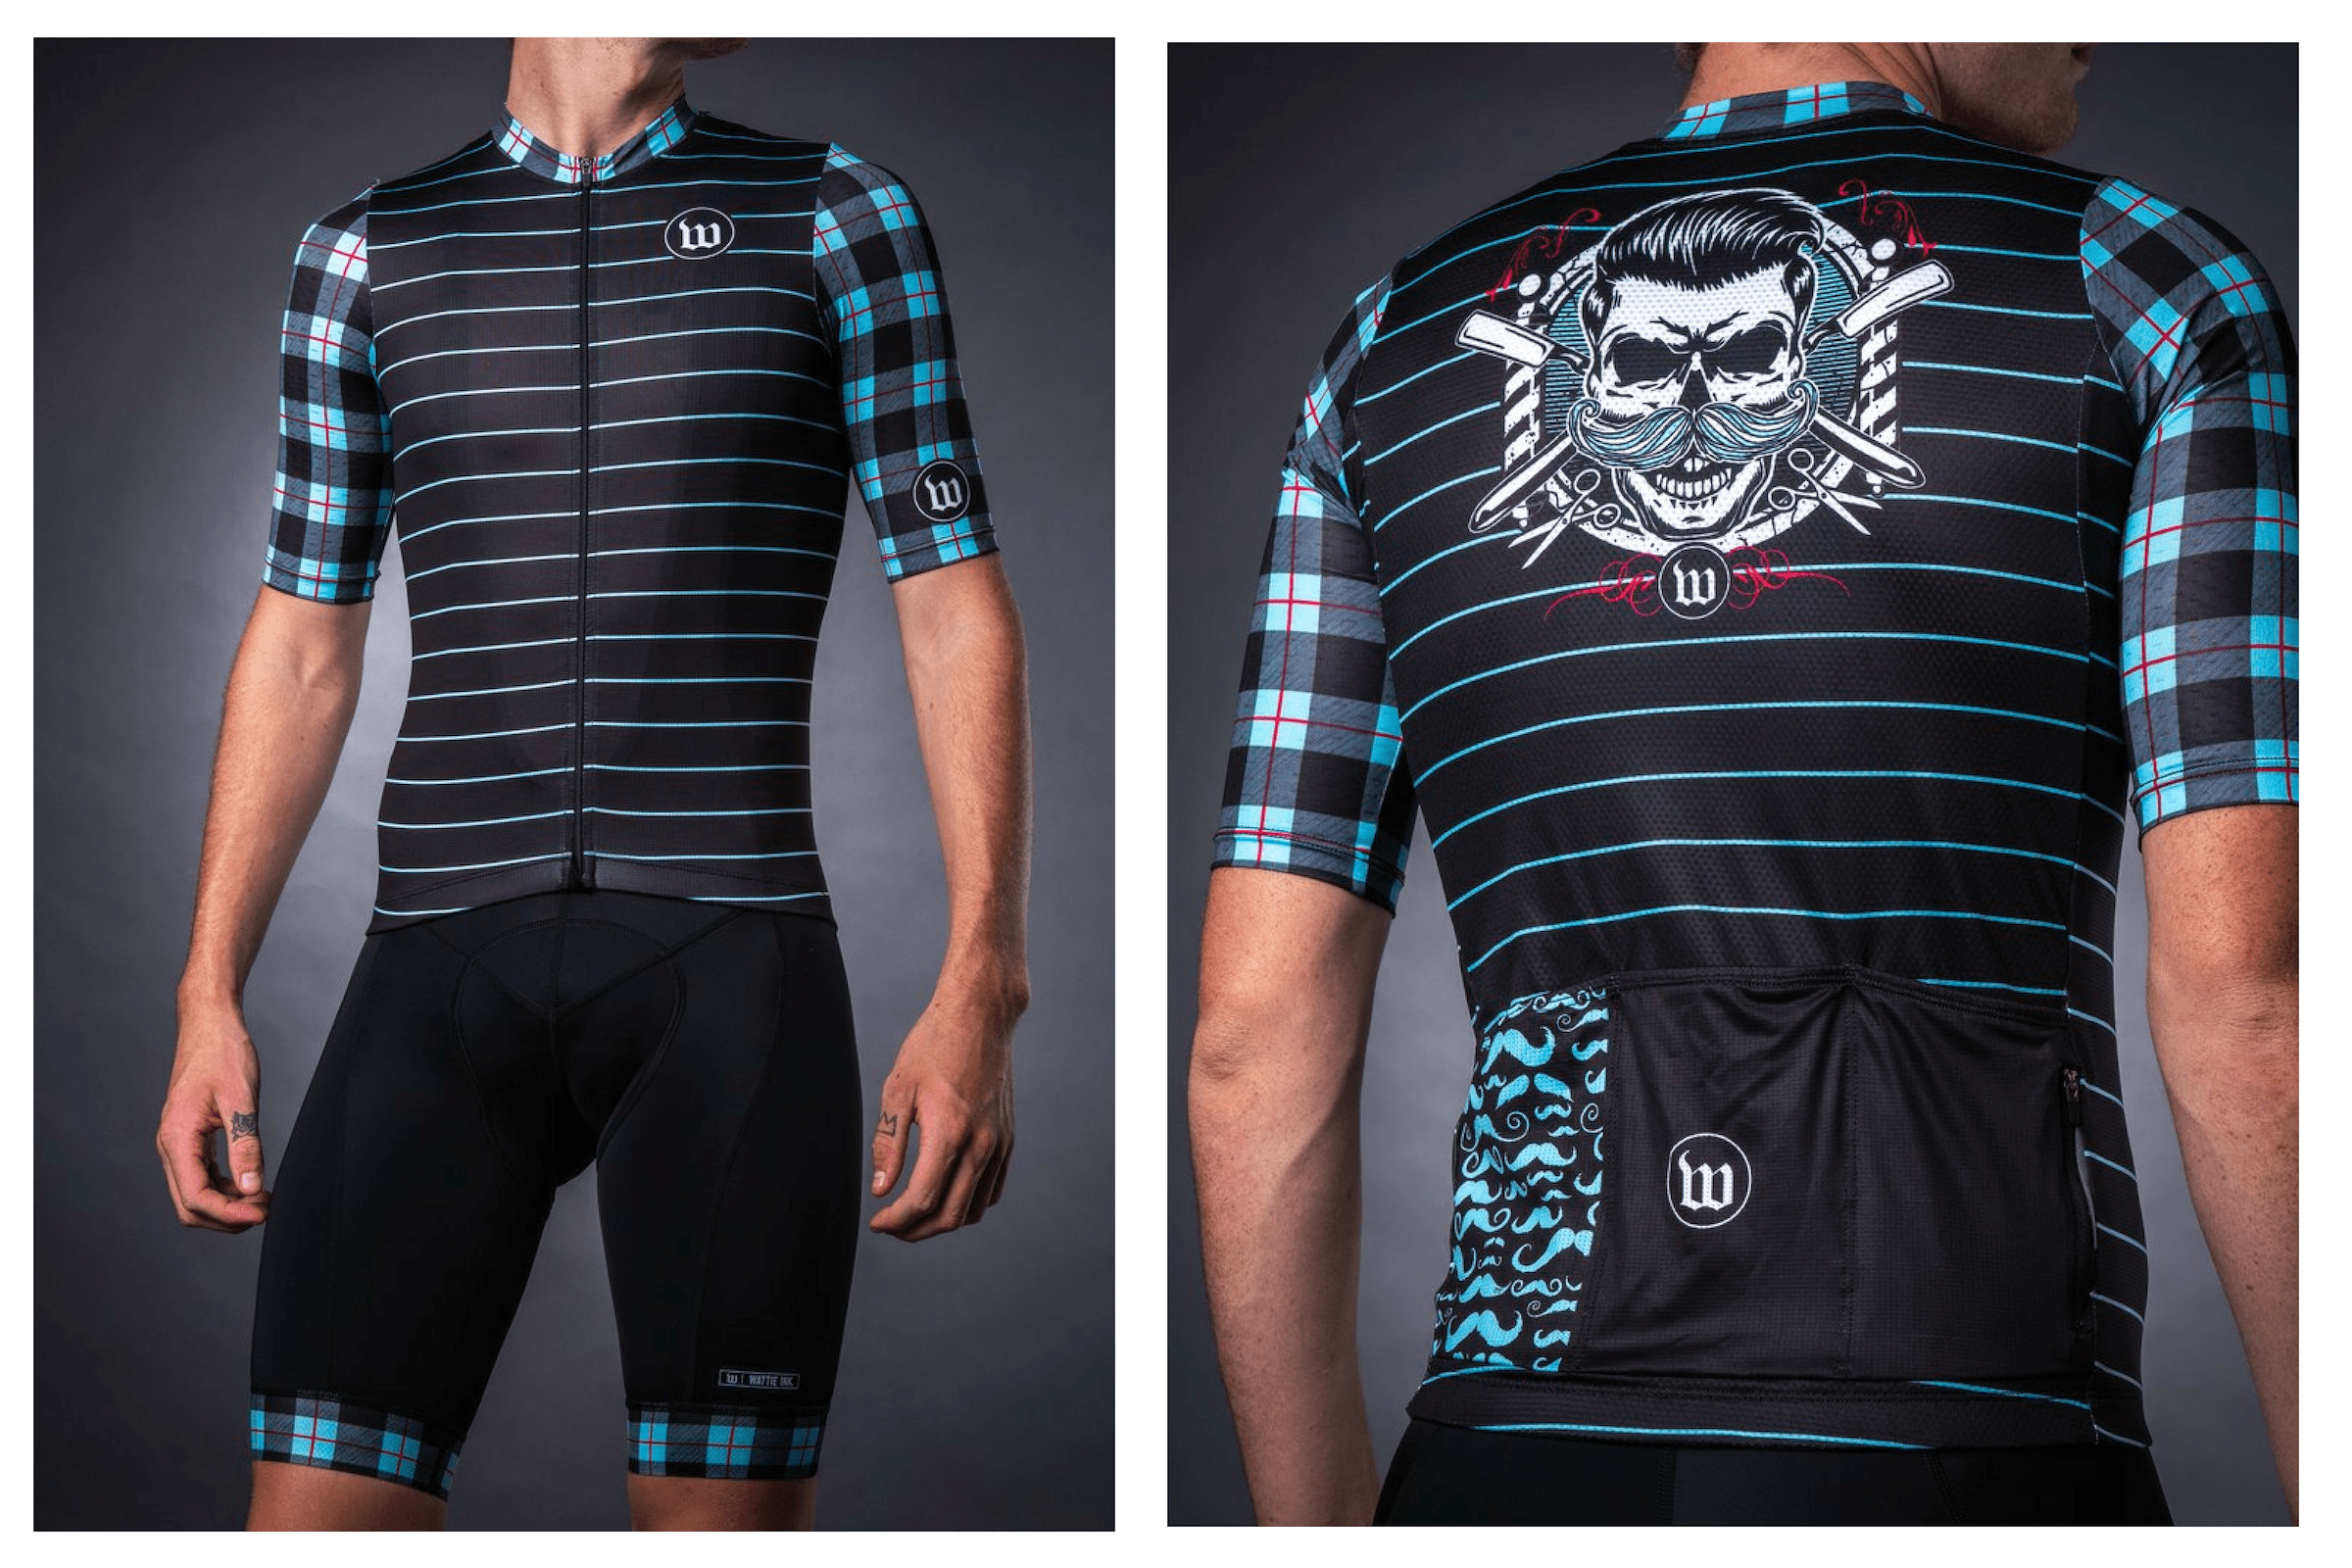 You can find the original article HERE at WattieInk.com and please take the  time to shop and explore all the cool triathlon and cycling ... 9c72fd1a6